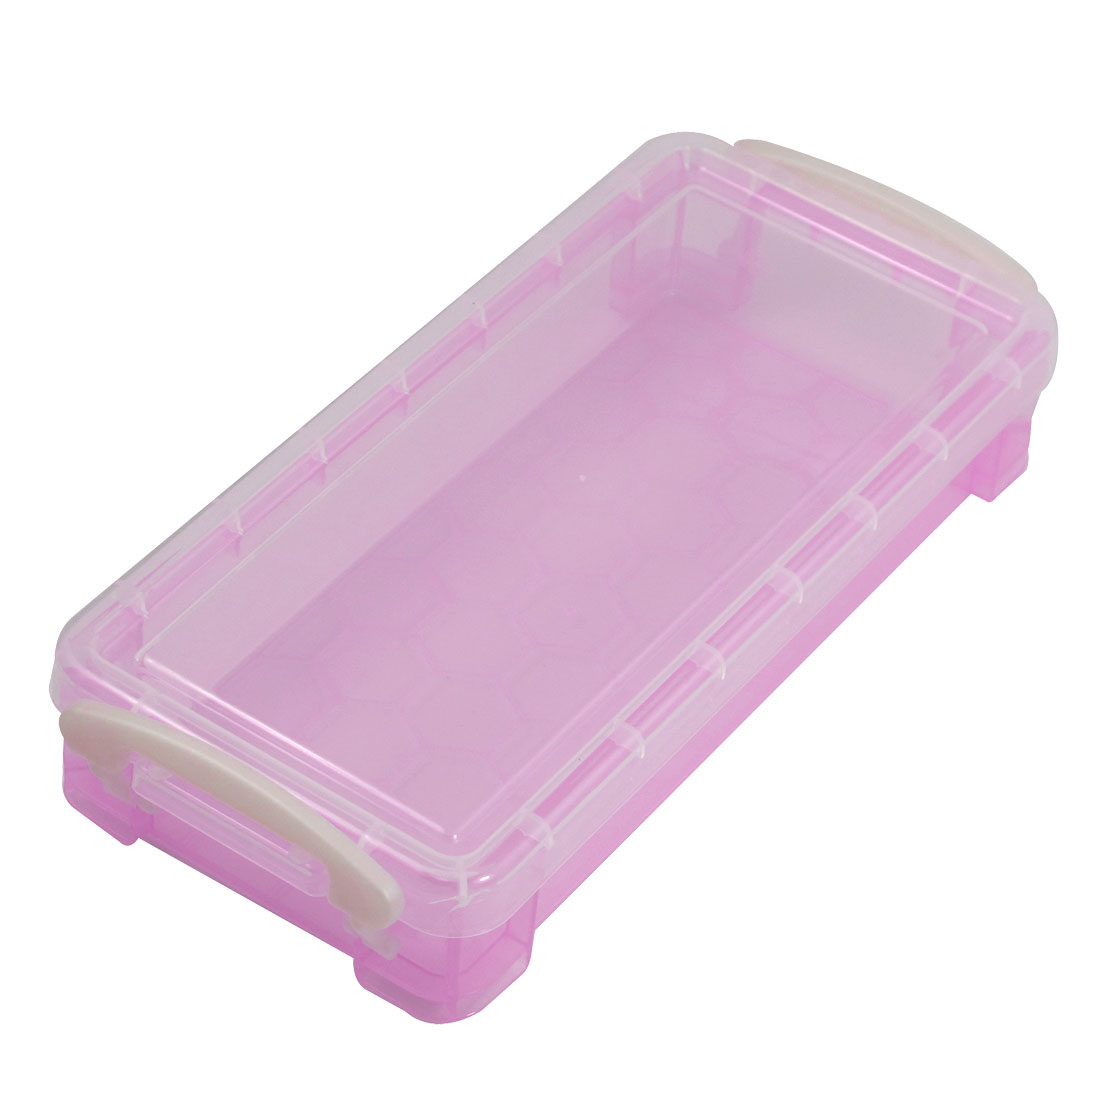 Clear Cover Pink Hard Plastic Components Storage Enclosure Case Box